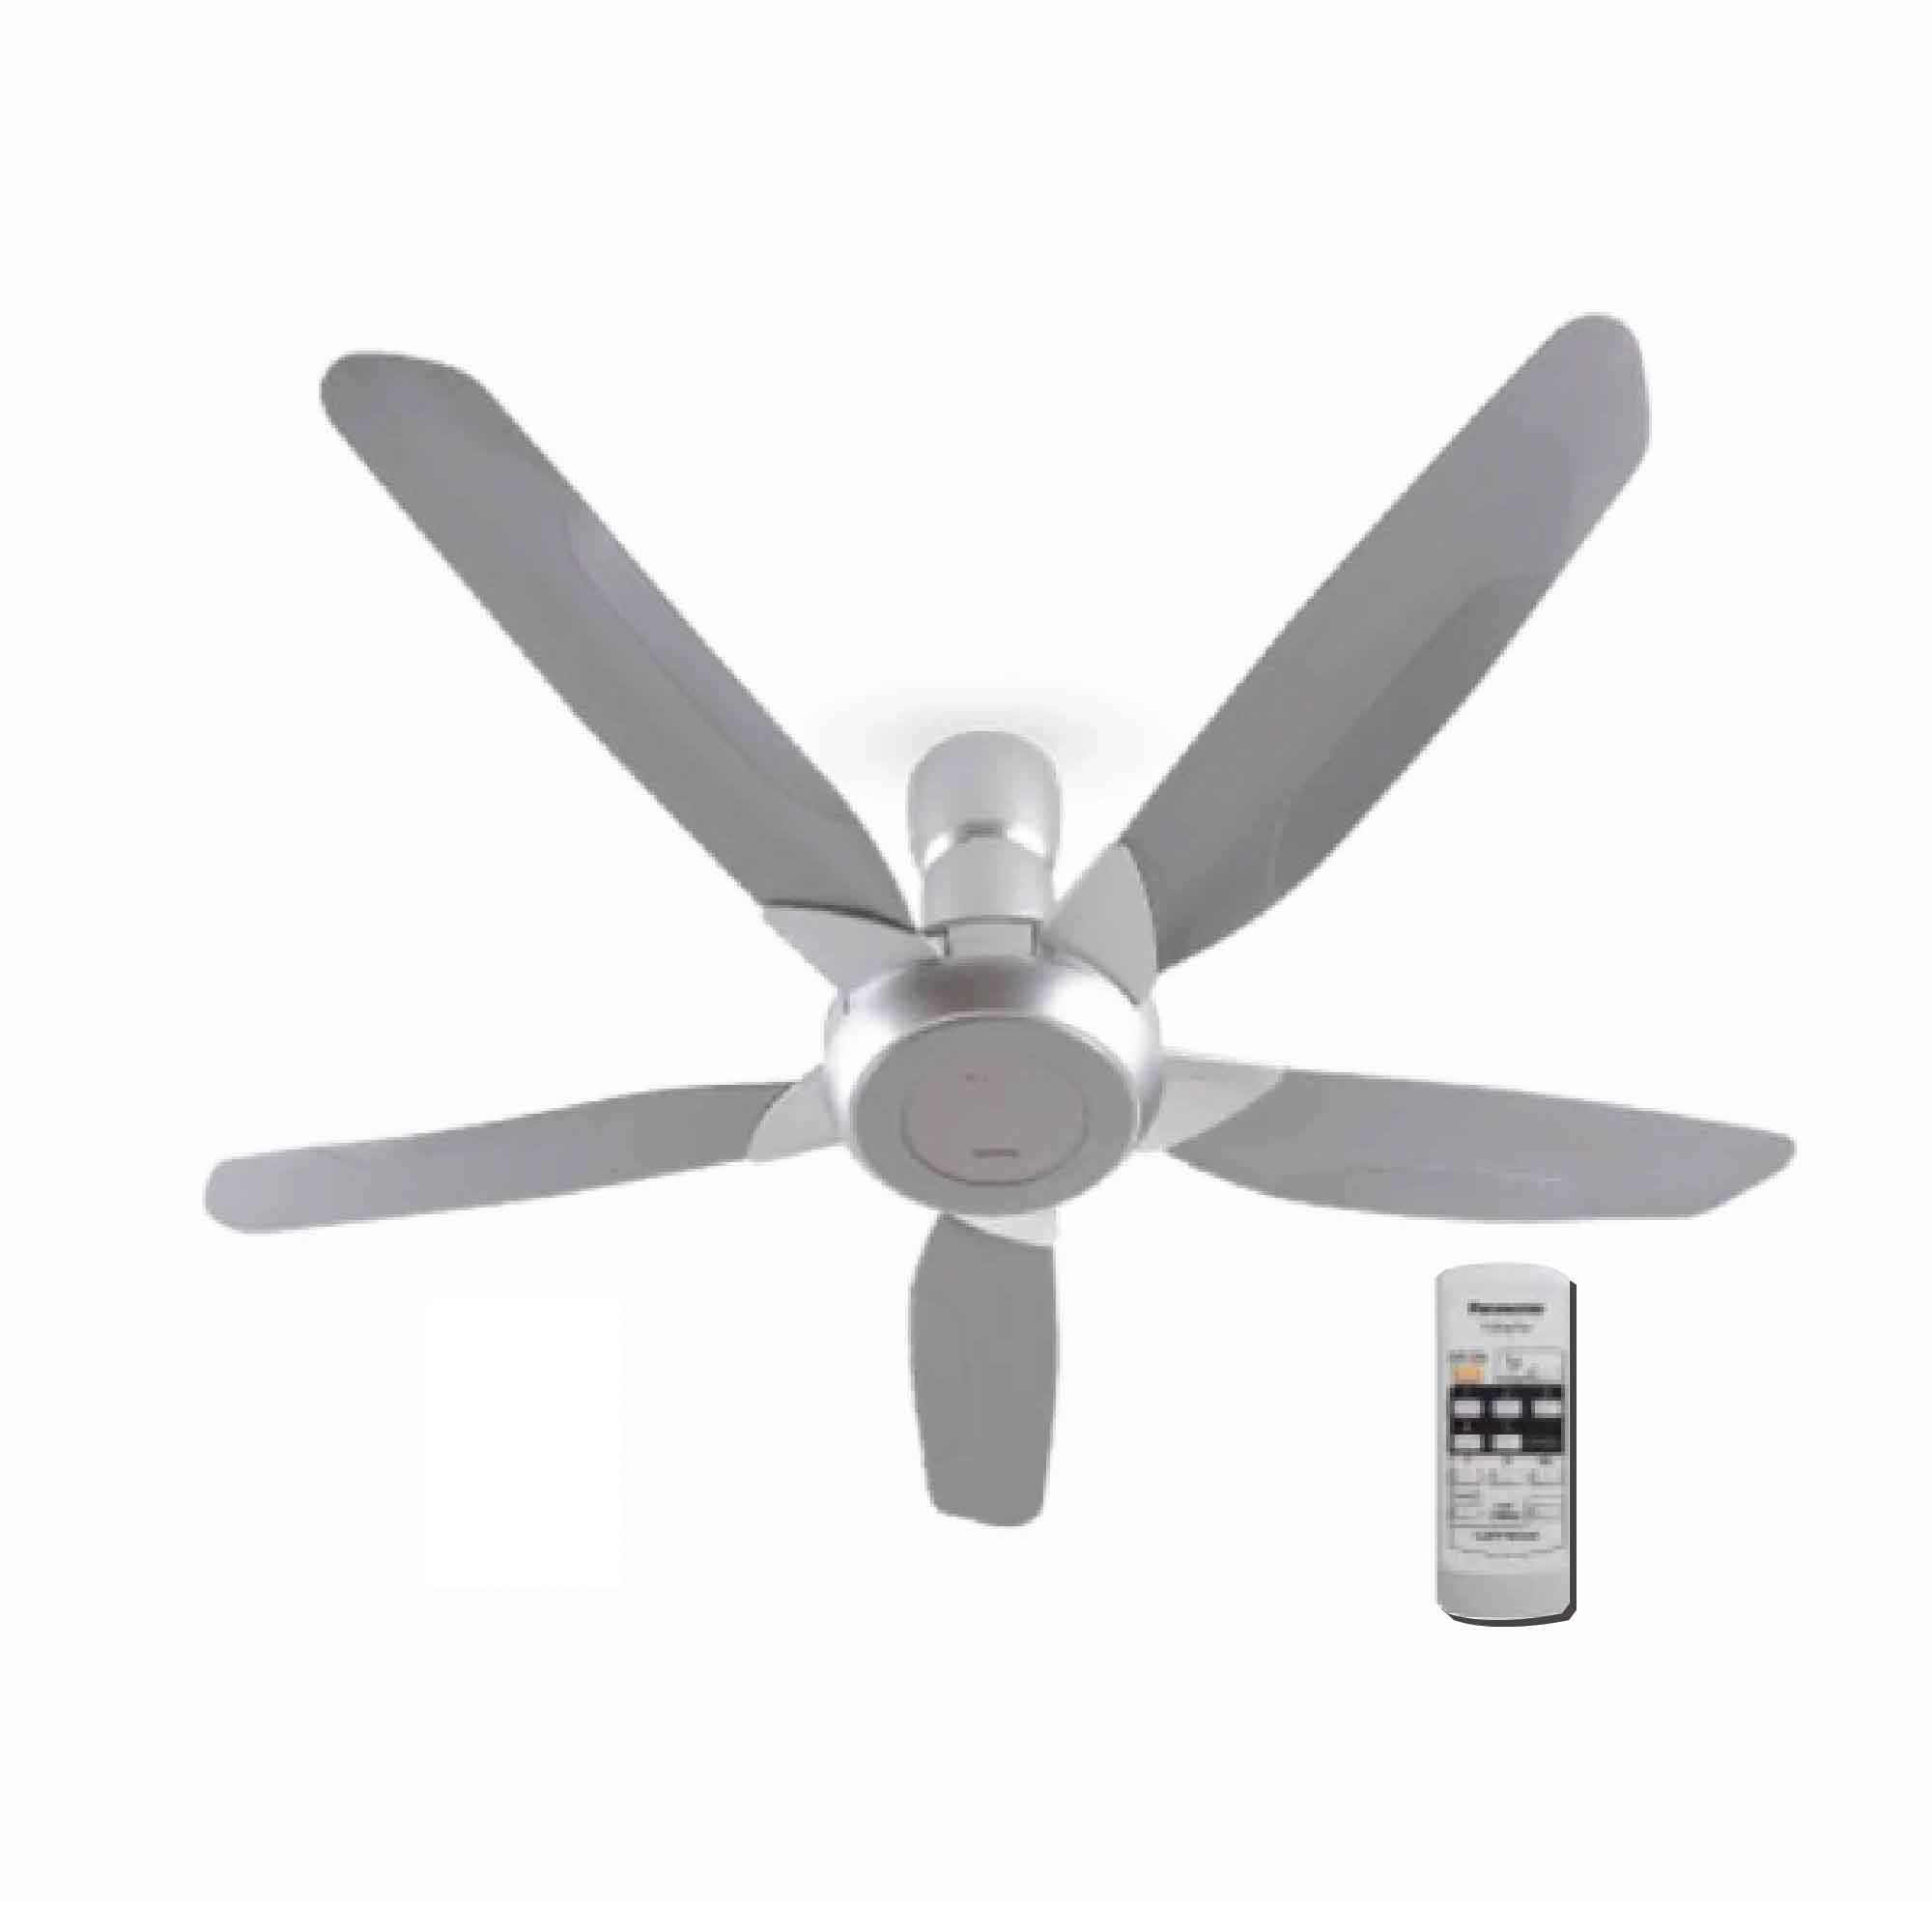 sale inch product china fan competitive ceiling white price oyixvdslbtce led hot